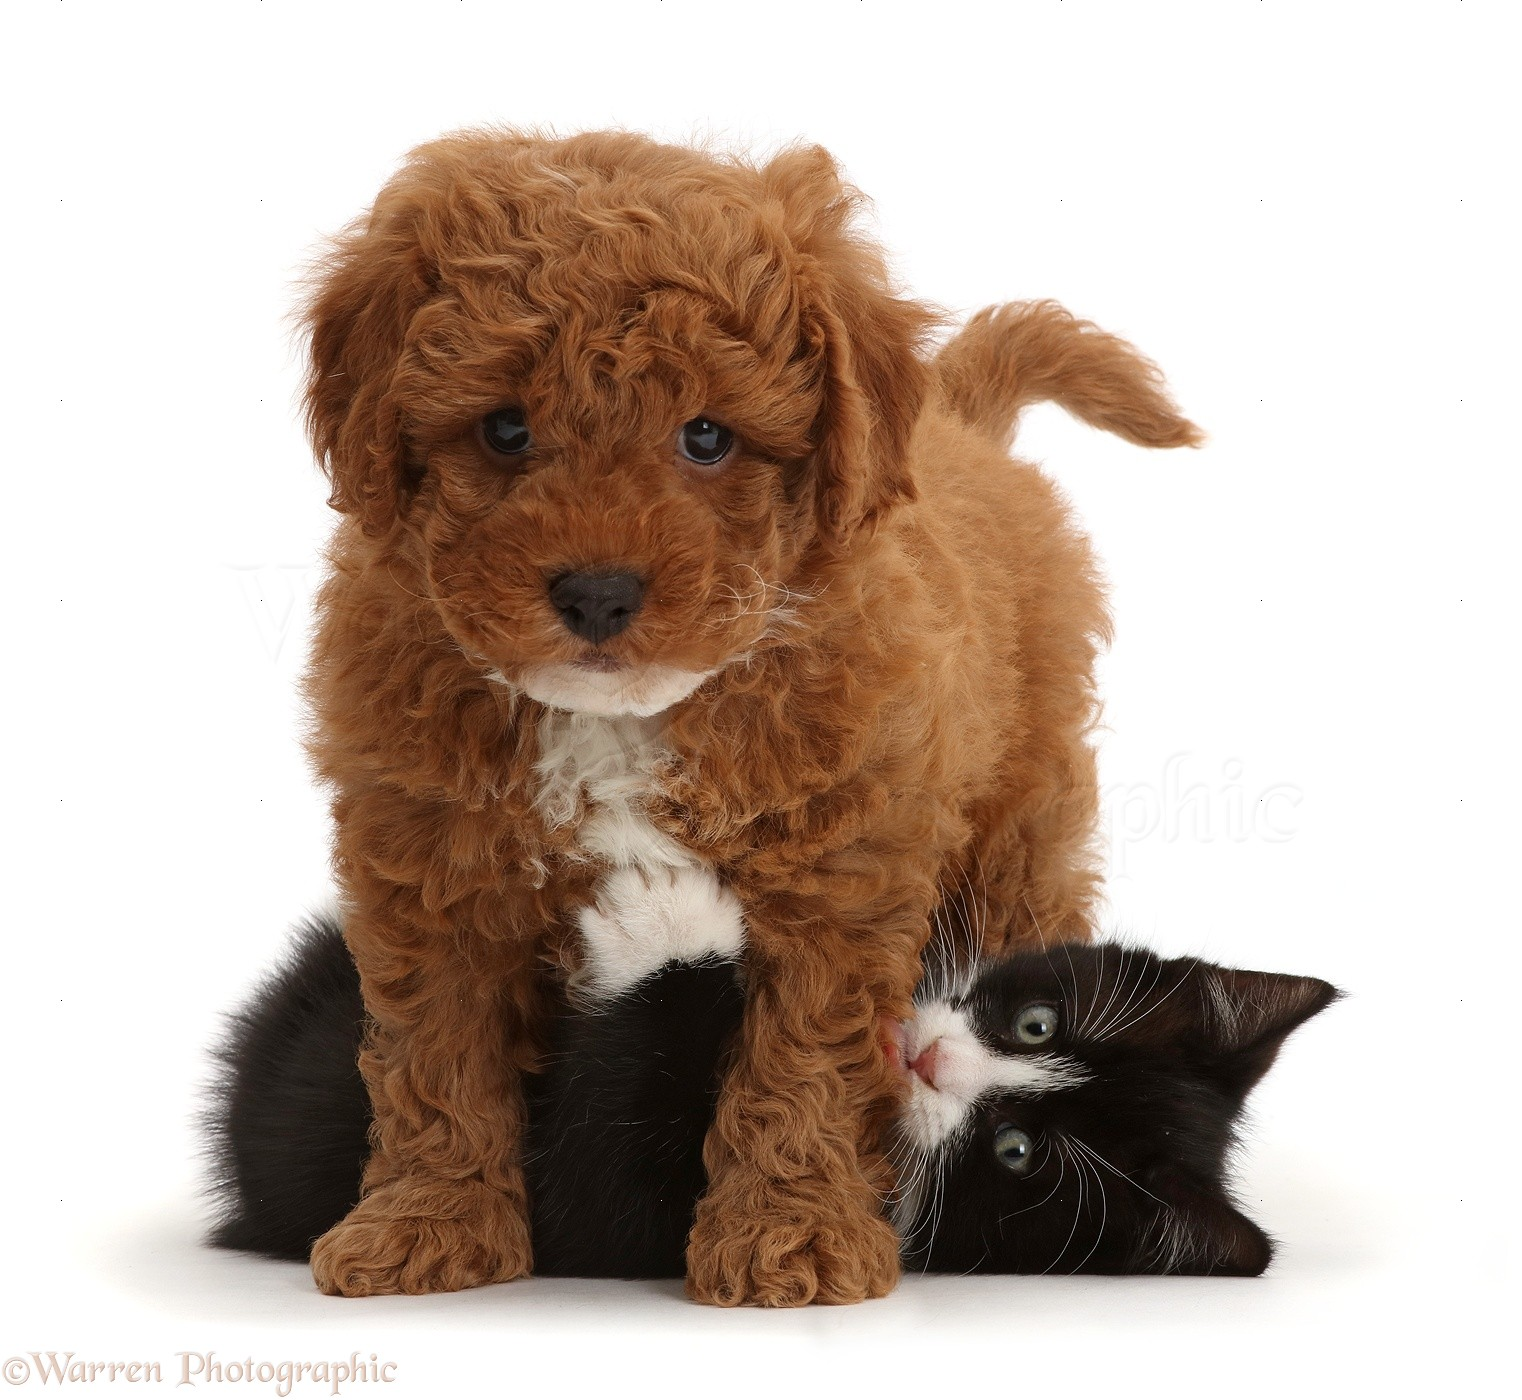 ... white kitten, Solo , 7 weeks old, playing with F1b toy Cavapoo puppy